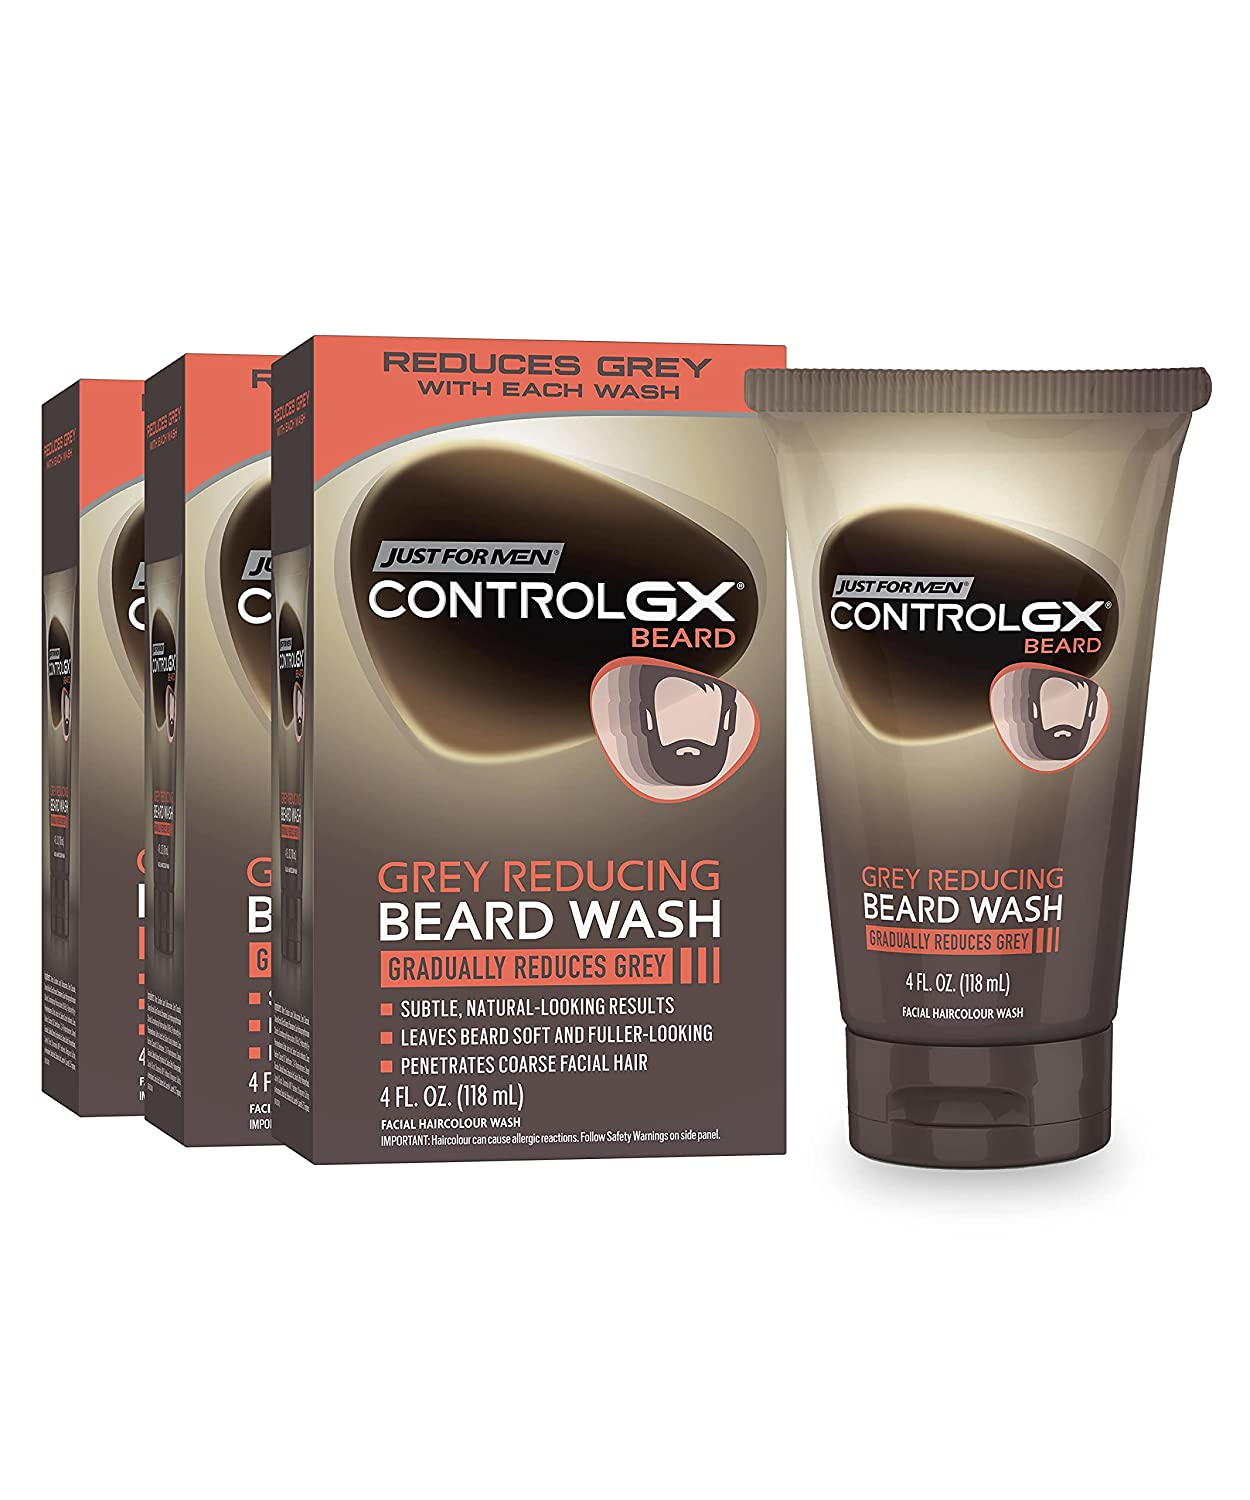 Just For Men Control GX Jacksonville Mall Outlet sale feature Grey Gradua Beard Wash Shampoo Reducing